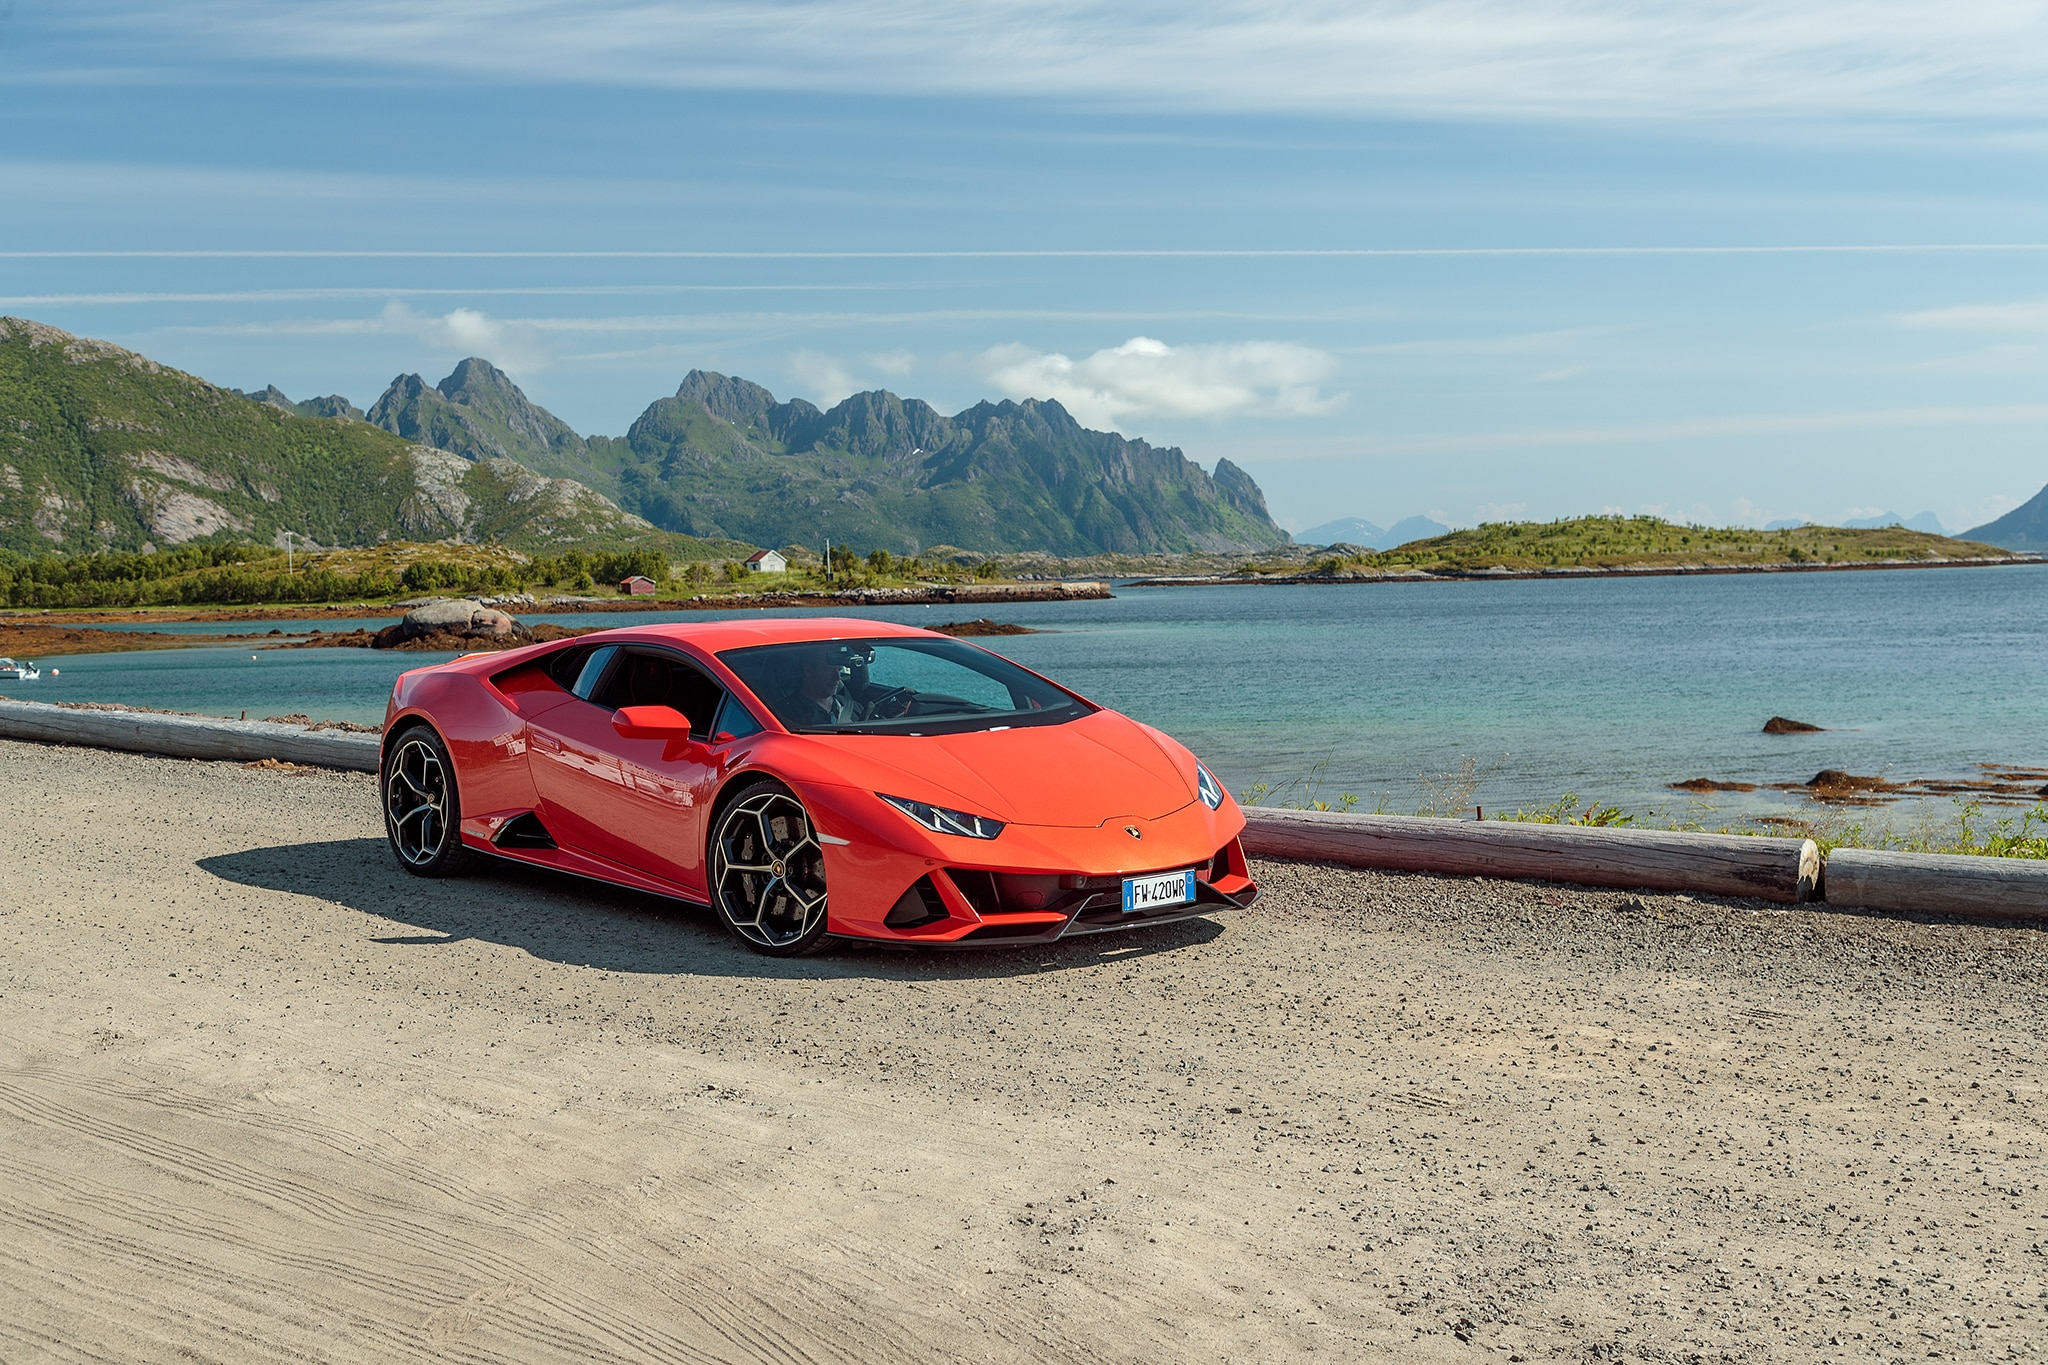 Driving Lambo S 2020 Huracan Evo In The Land Of Evs